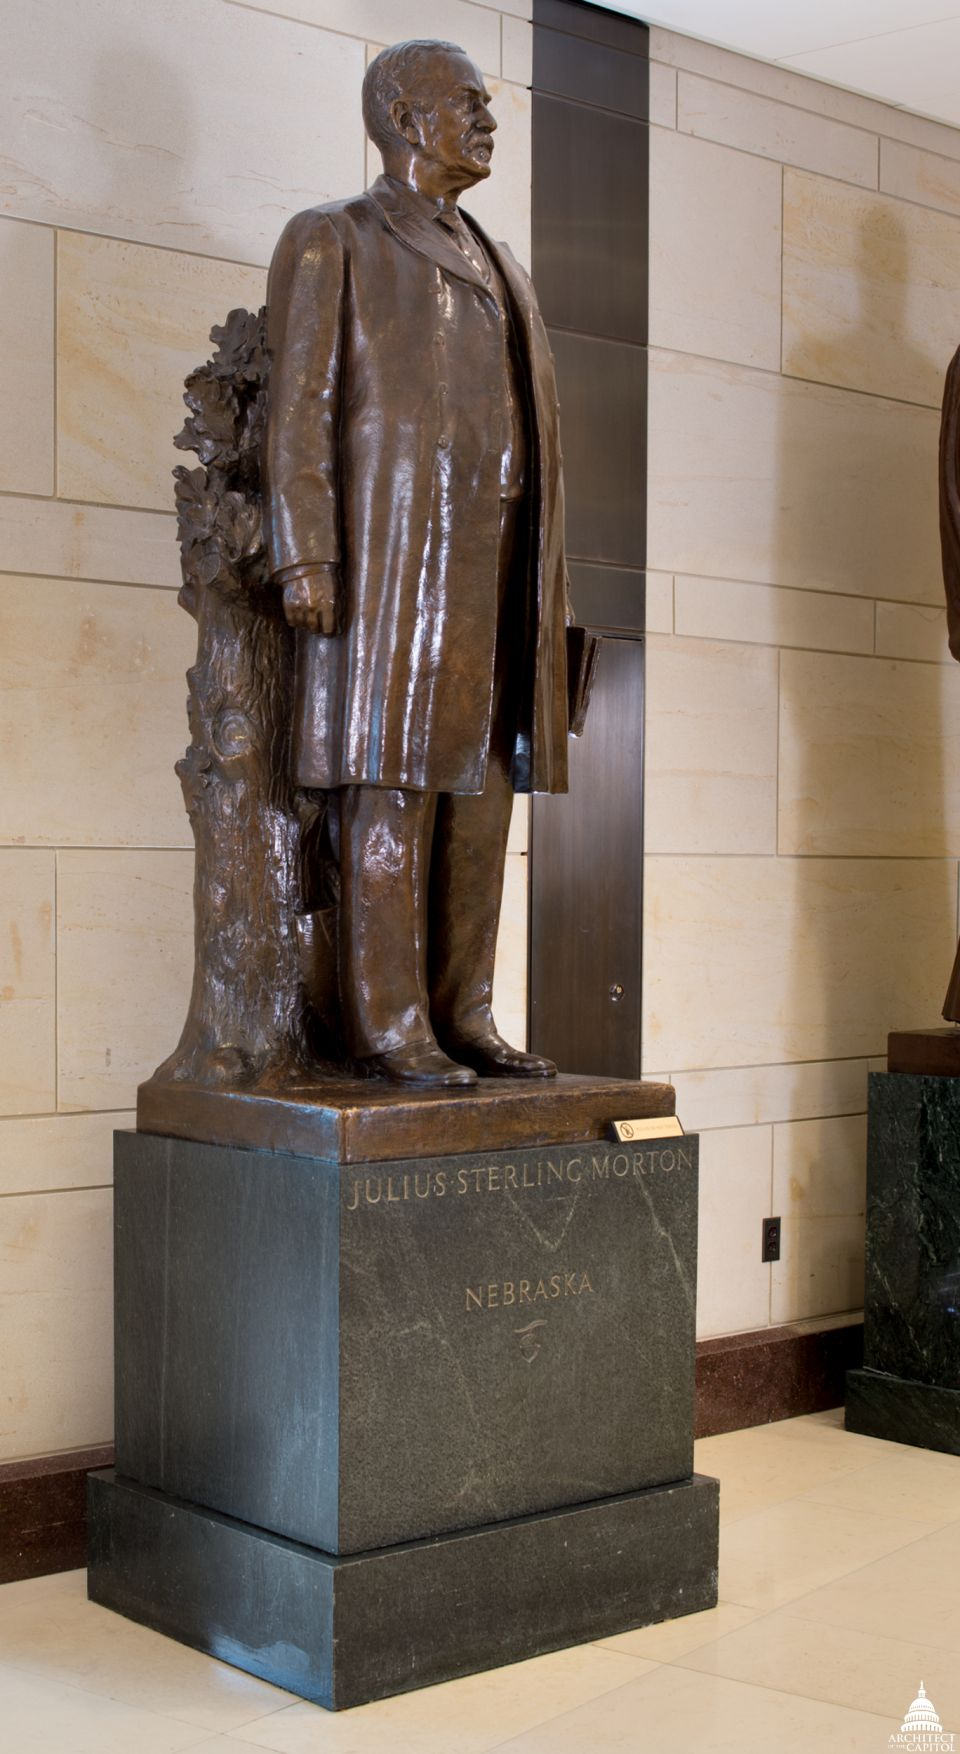 J. Sterling Morton's Capitol statue featuring a tree trunk, sapling, pruning shears and shovel symbolizing his founding of Arbor Day